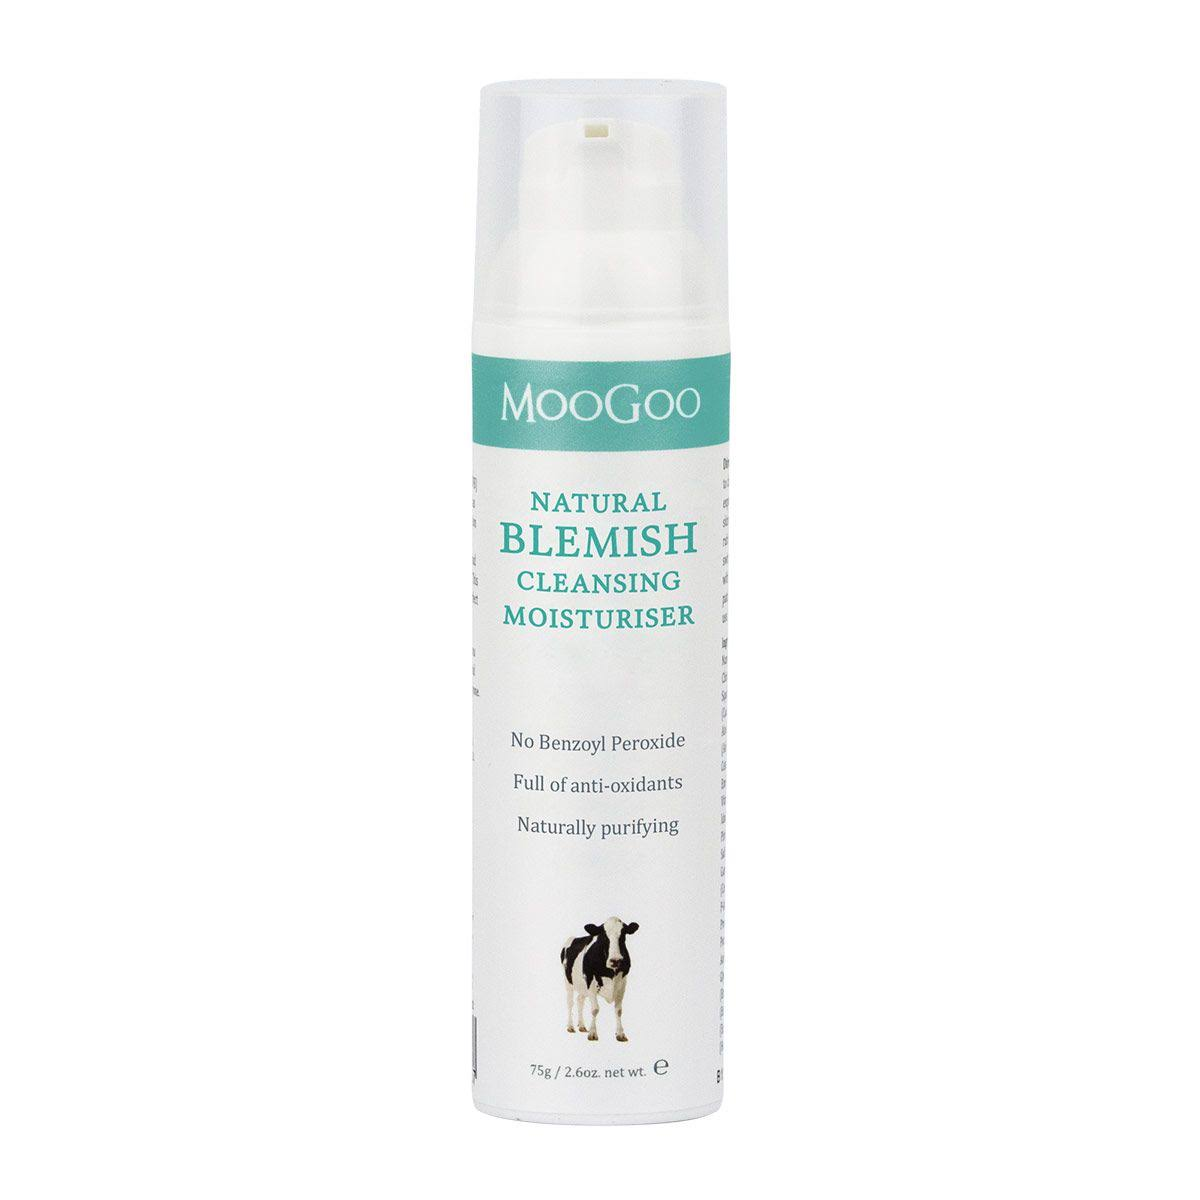 Moogoo Acne Cleansing Cream